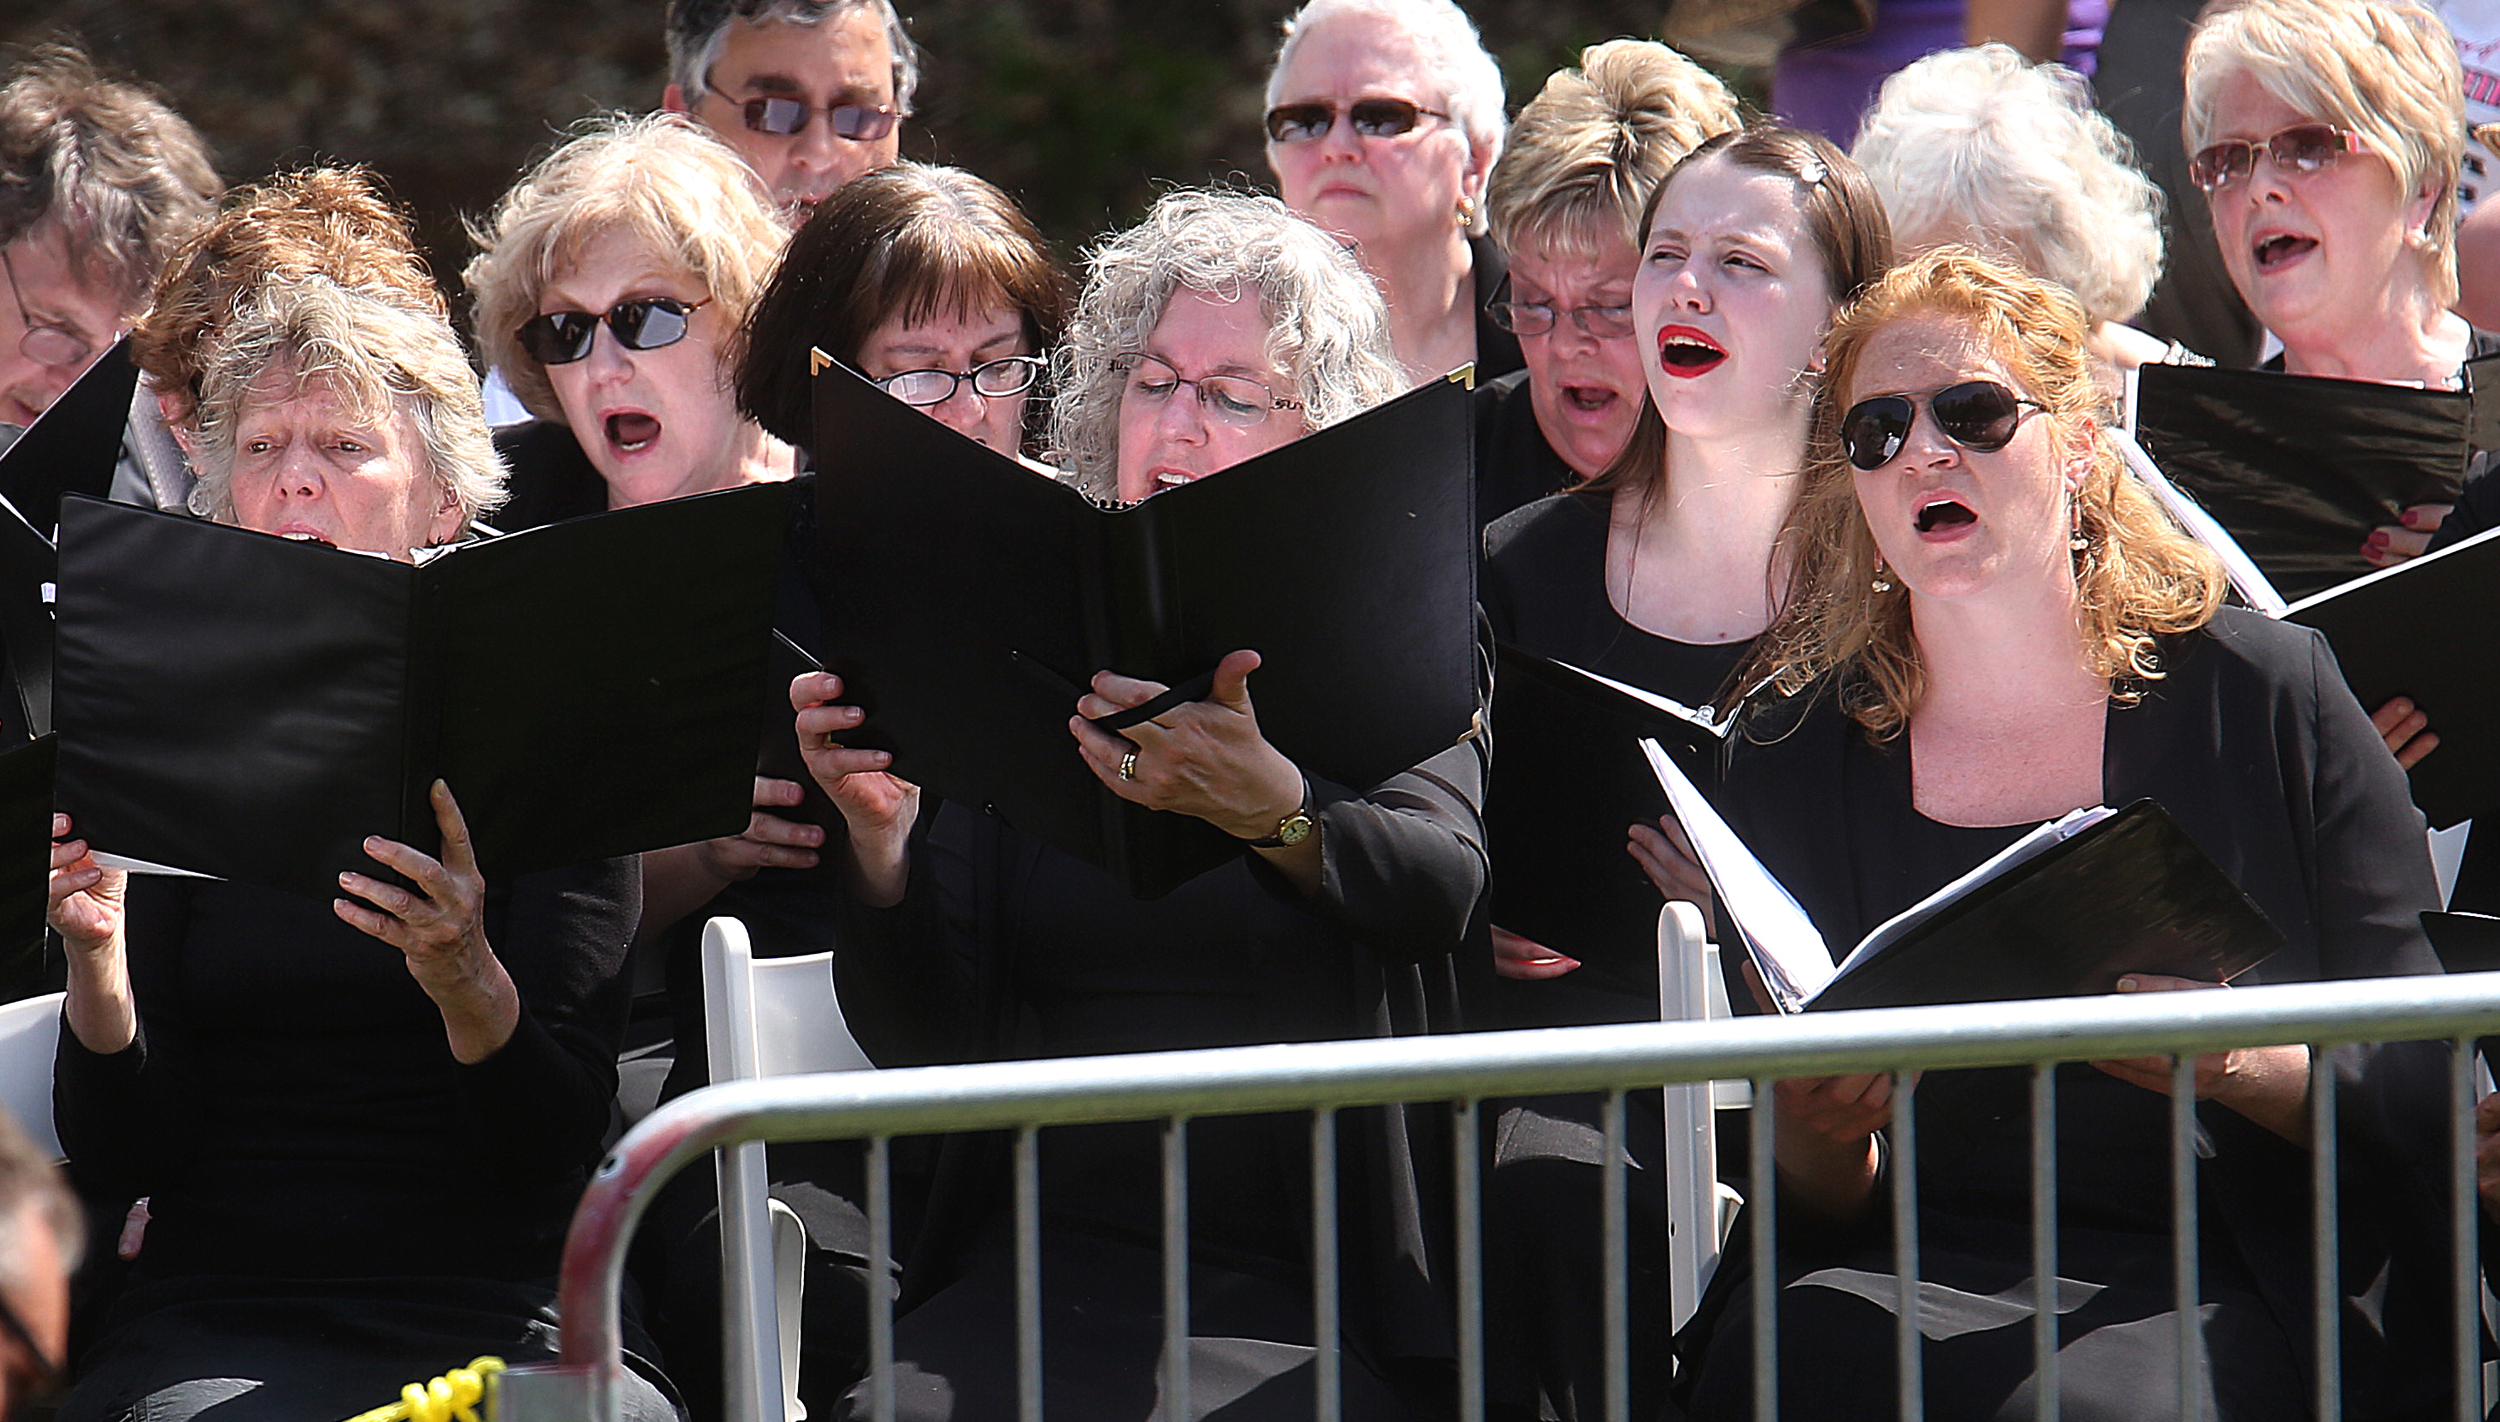 Members of the Springfield Choral Society under the direction of Marion van der Loo, singhymns heard during theLincoln funeral in 1865Sunday at Oak Ridge Cemetery. David Spencer/The State Journal-Register